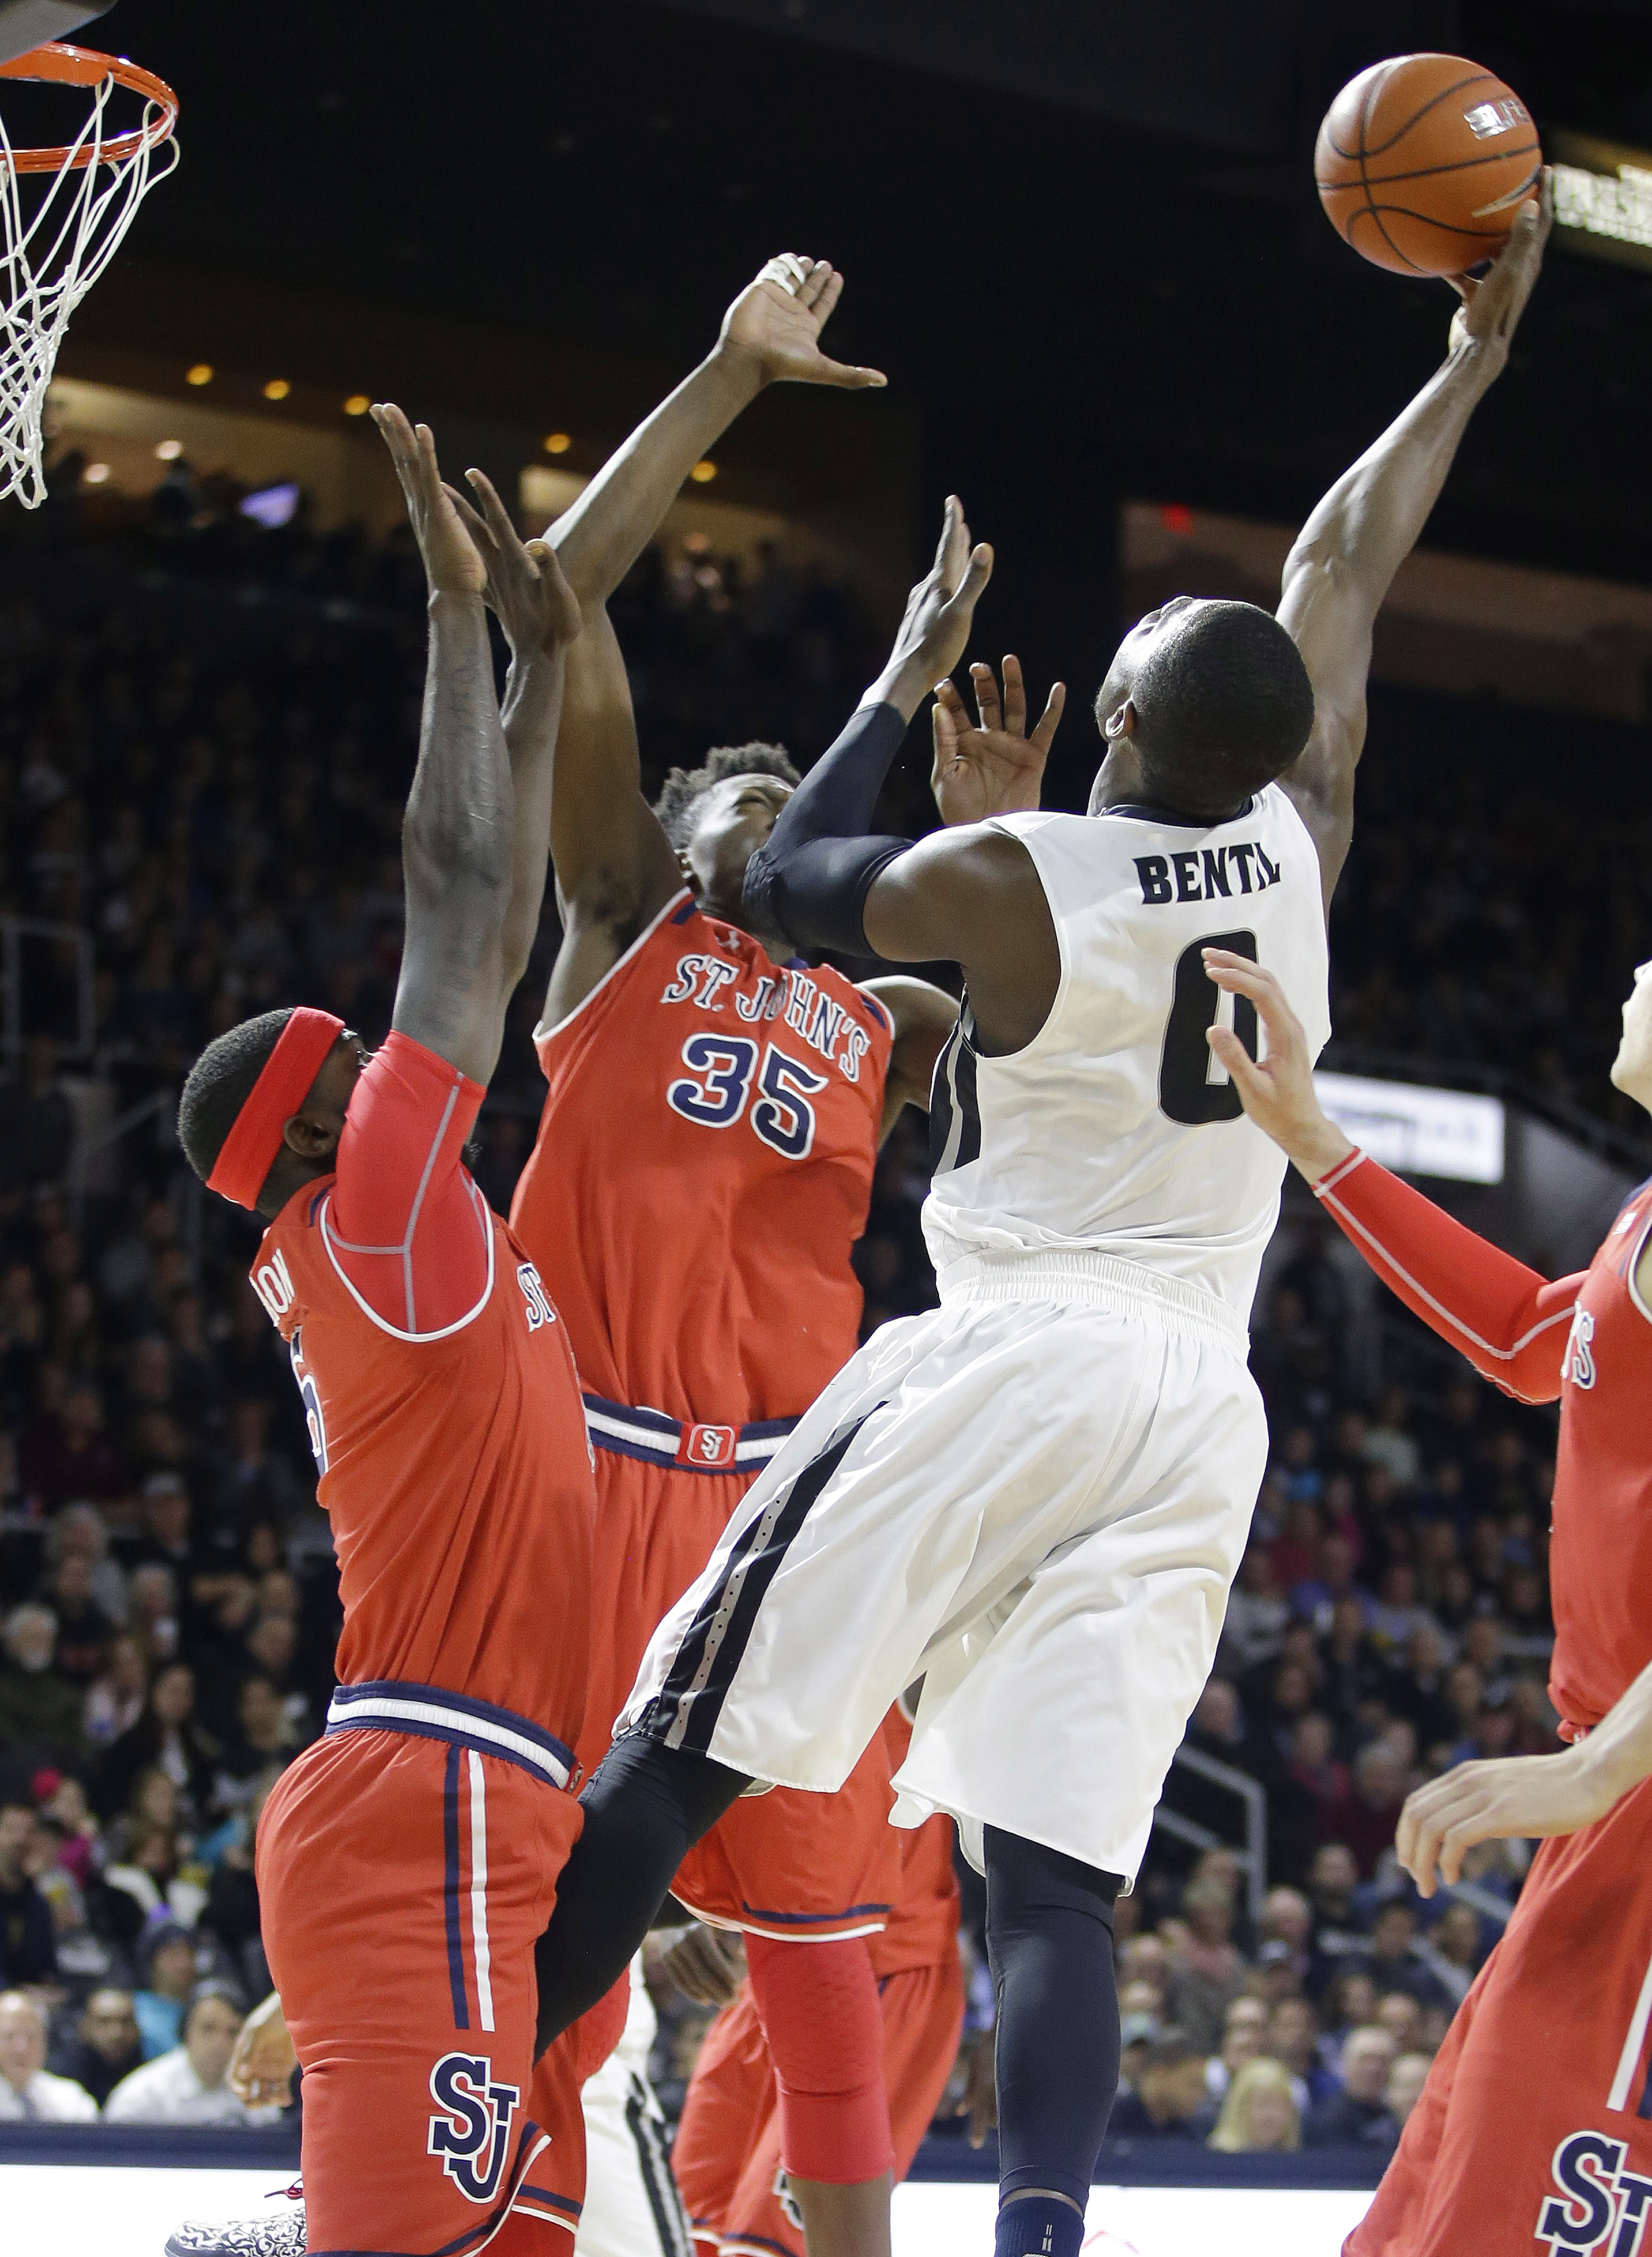 Providence forward Ben Bentil (0) shoots over St. John's center Yankuba Sima (35) and forward Durand Johnson (5) during the first half of an NCAA college basketball game, Saturday, Jan. 2, 2016, in Providence, R.I. (AP Photo/Stephan Savoia)